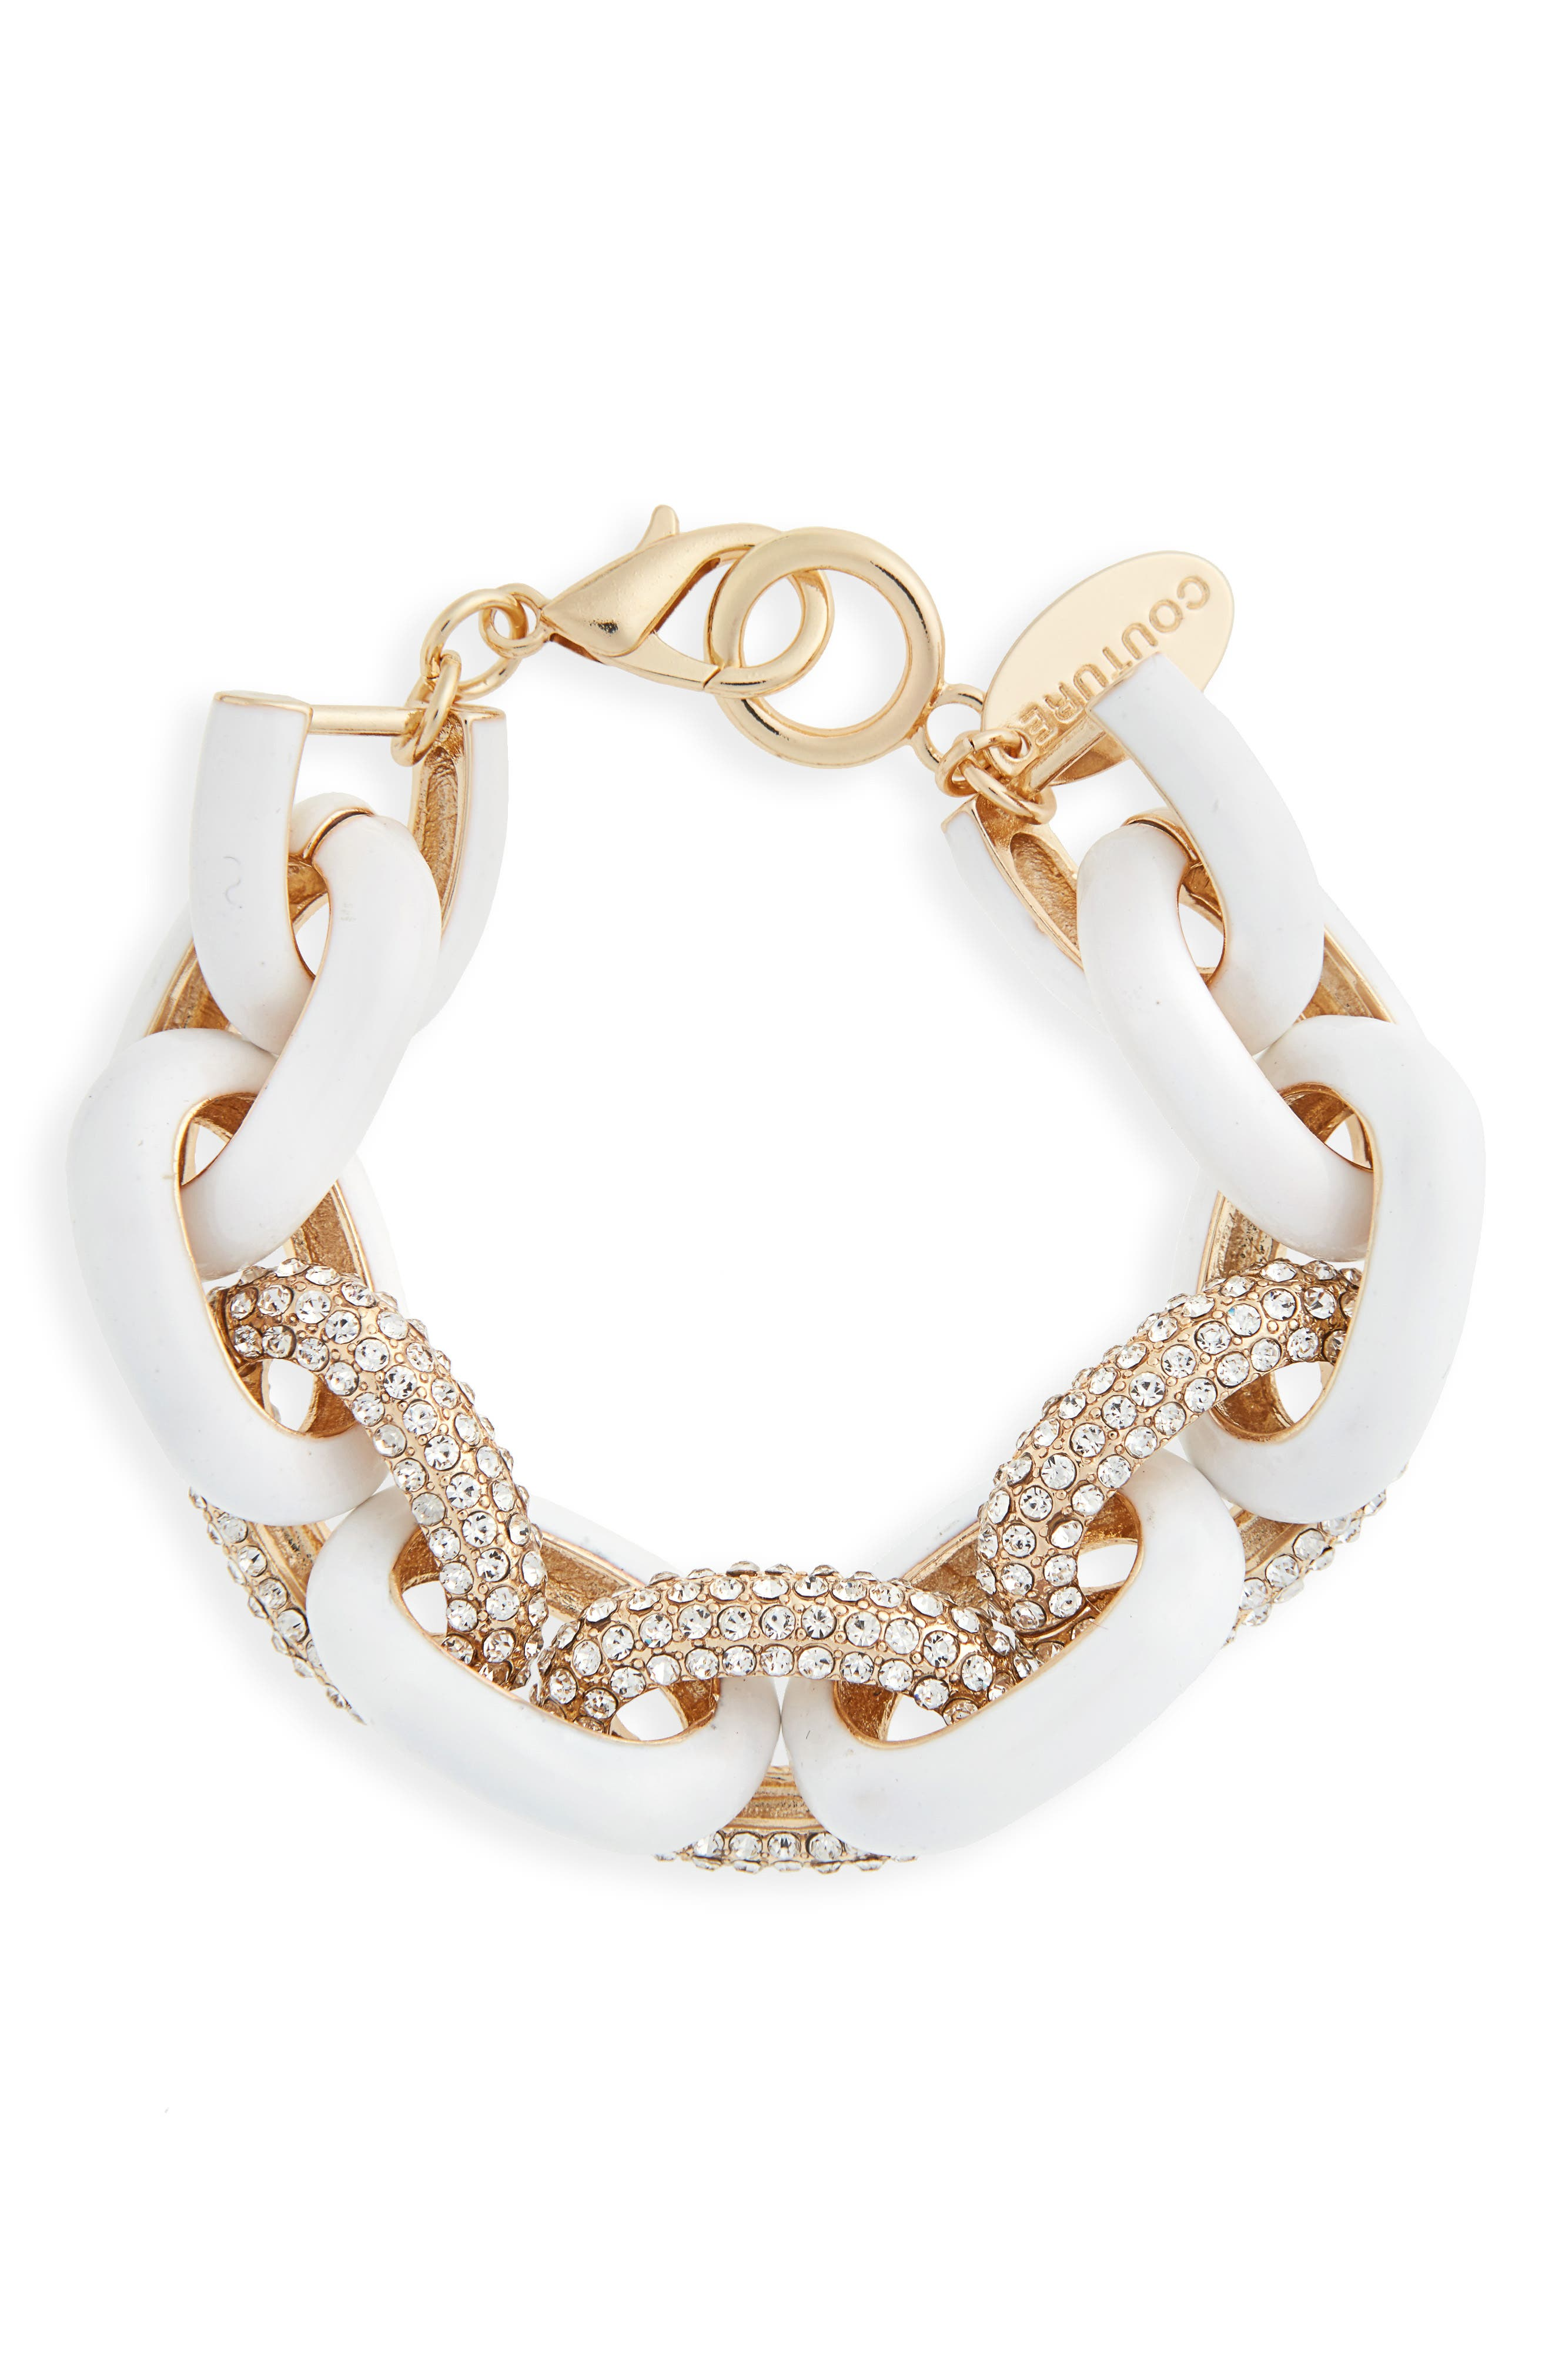 Couture Crystal Link Bracelet,                         Main,                         color, Gold/ White